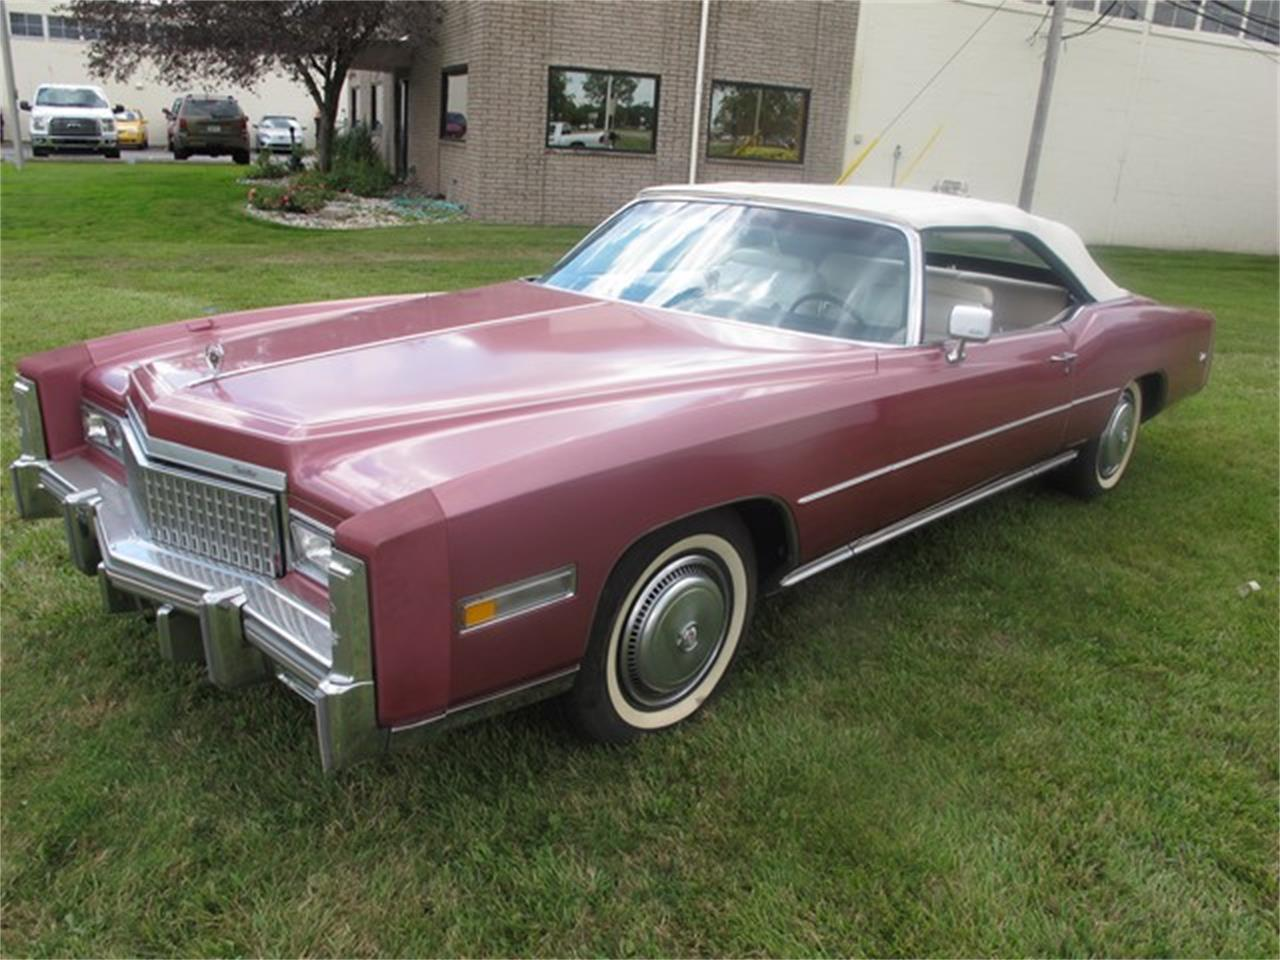 Large Picture of 1975 Cadillac Eldorado Offered by Classic Auto Showplace - LQFY